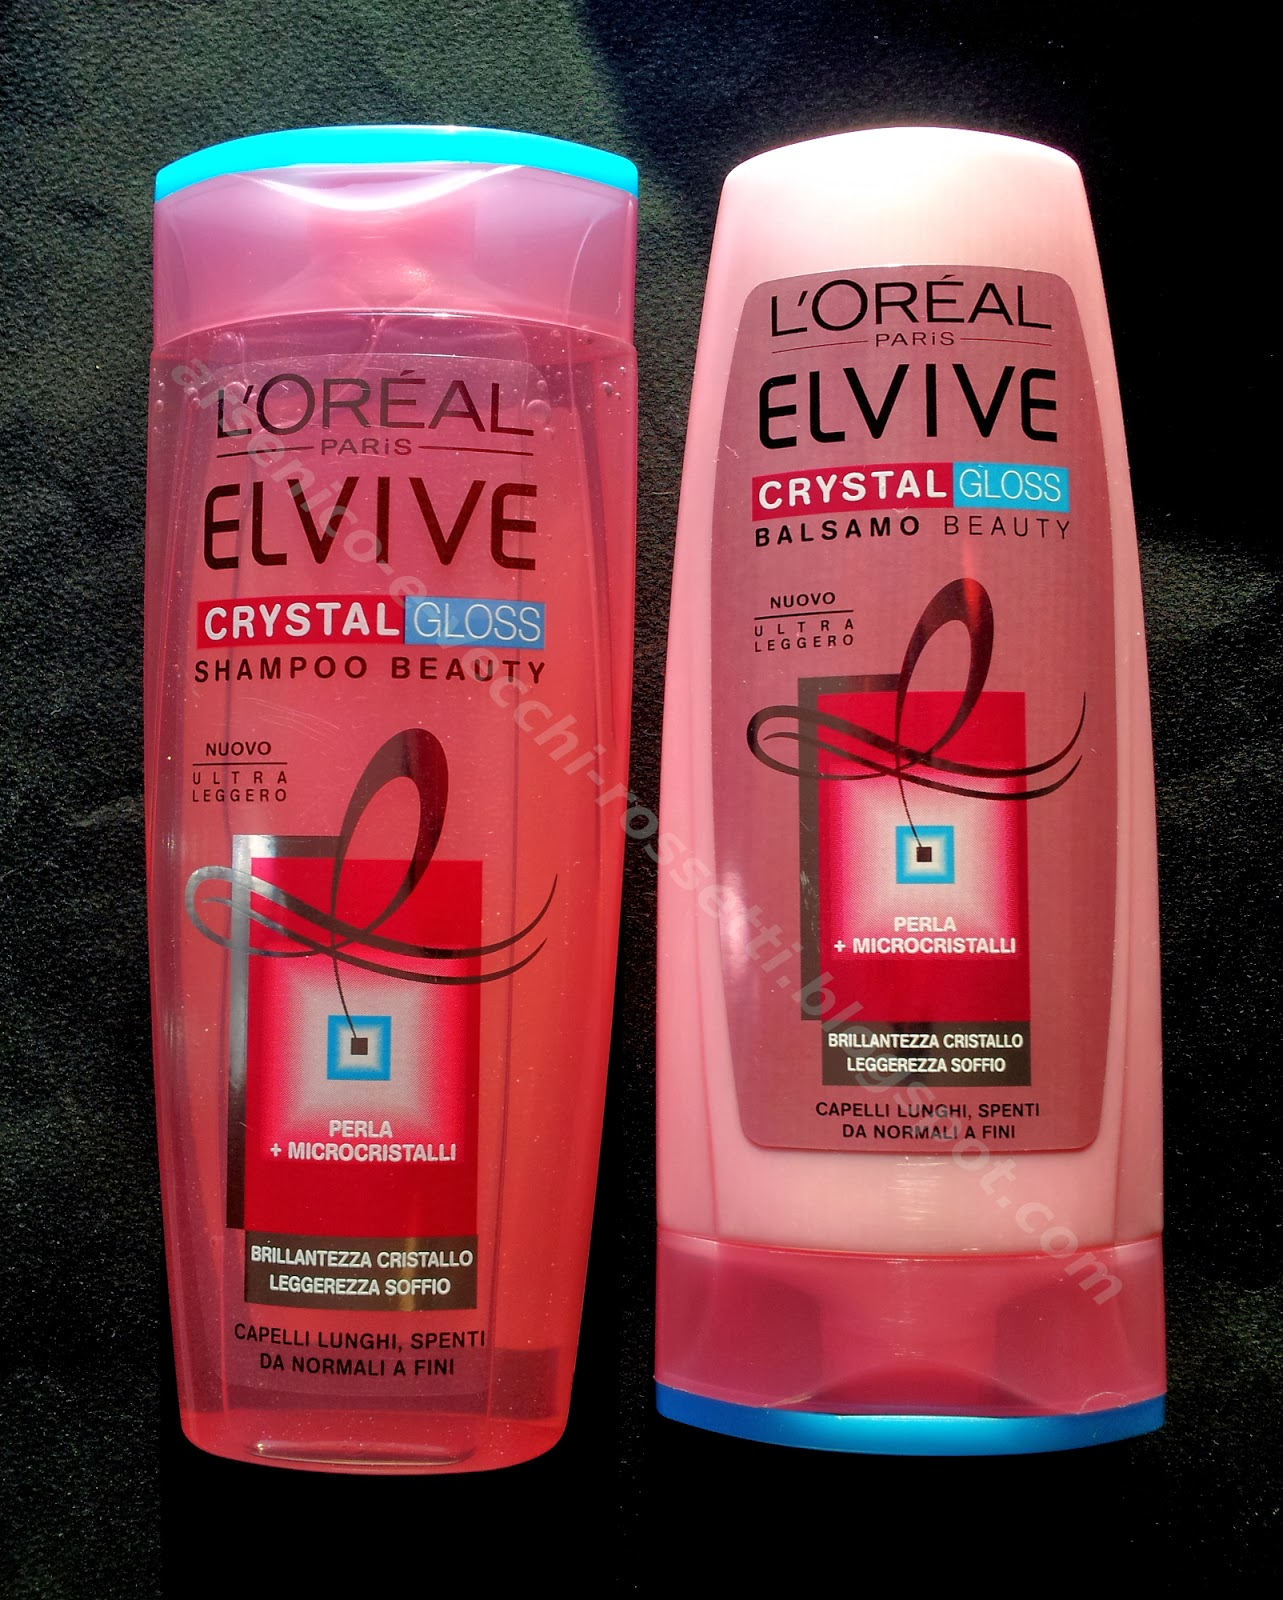 L'Oréal Paris Elvive Crystal Gloss Balsamo Shampoo